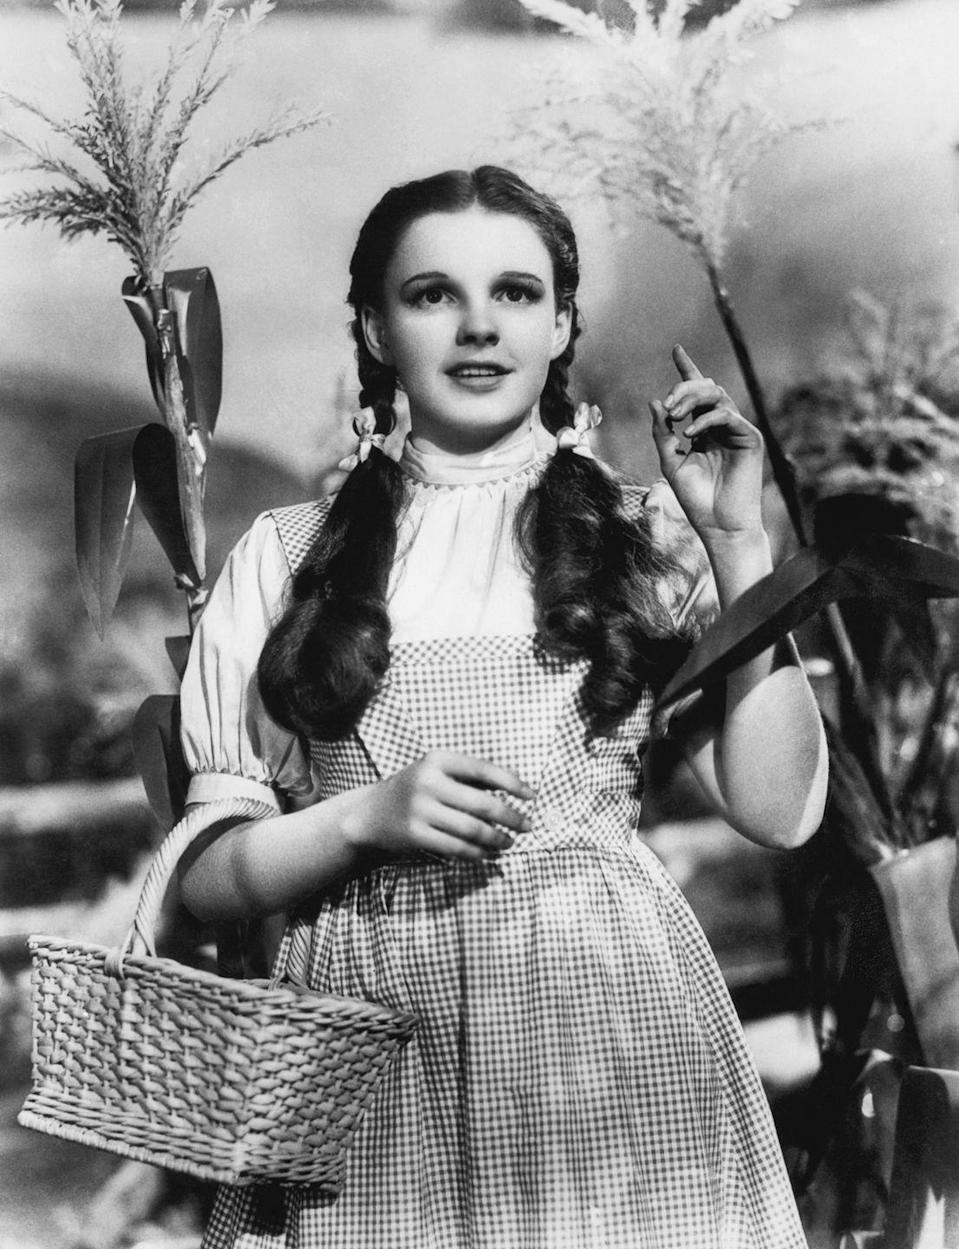 <p>Starring in her most famous role as Dorothy in 1938's wildly popular <em>Wizard of Oz</em>, Judy Garland helped popularize the curly pigtail look.</p>